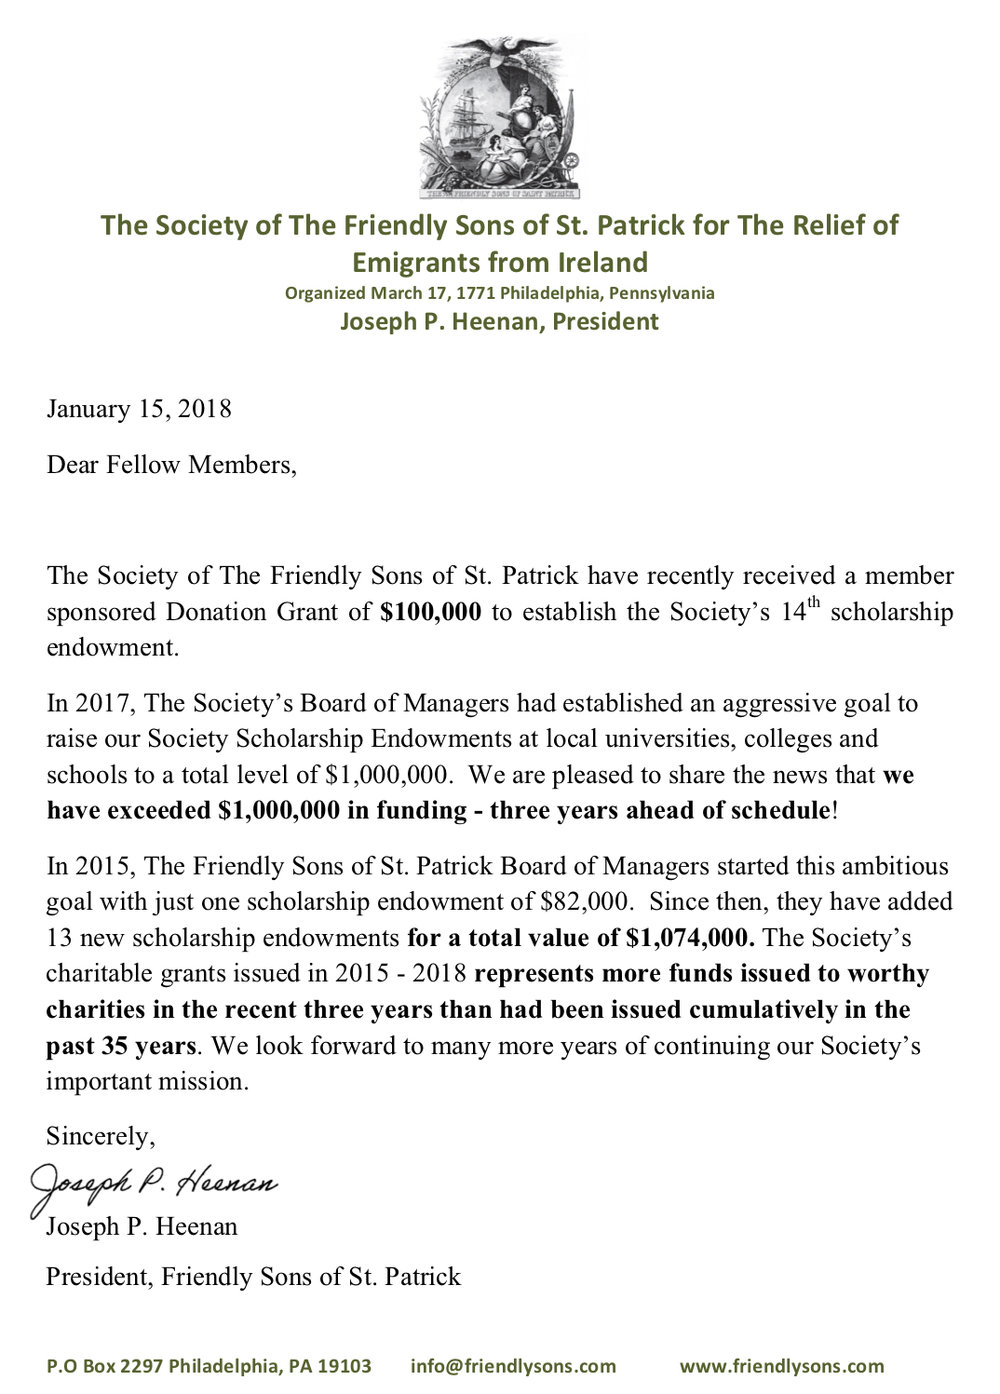 FSSP News Re Donation Grant of $100,000 and Society Exceeds $1,000,000 in Scholarship Endowments..jpg